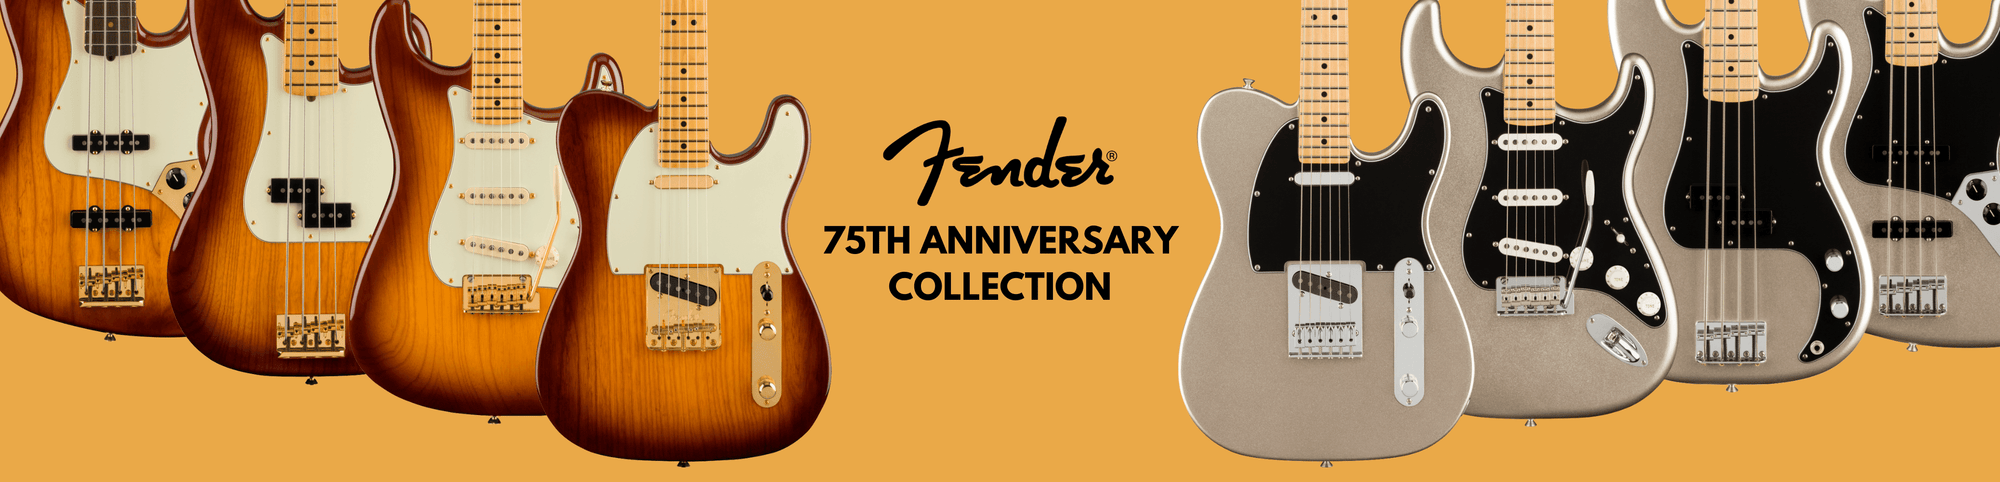 Fender unveil the 75th Anniversary Collection